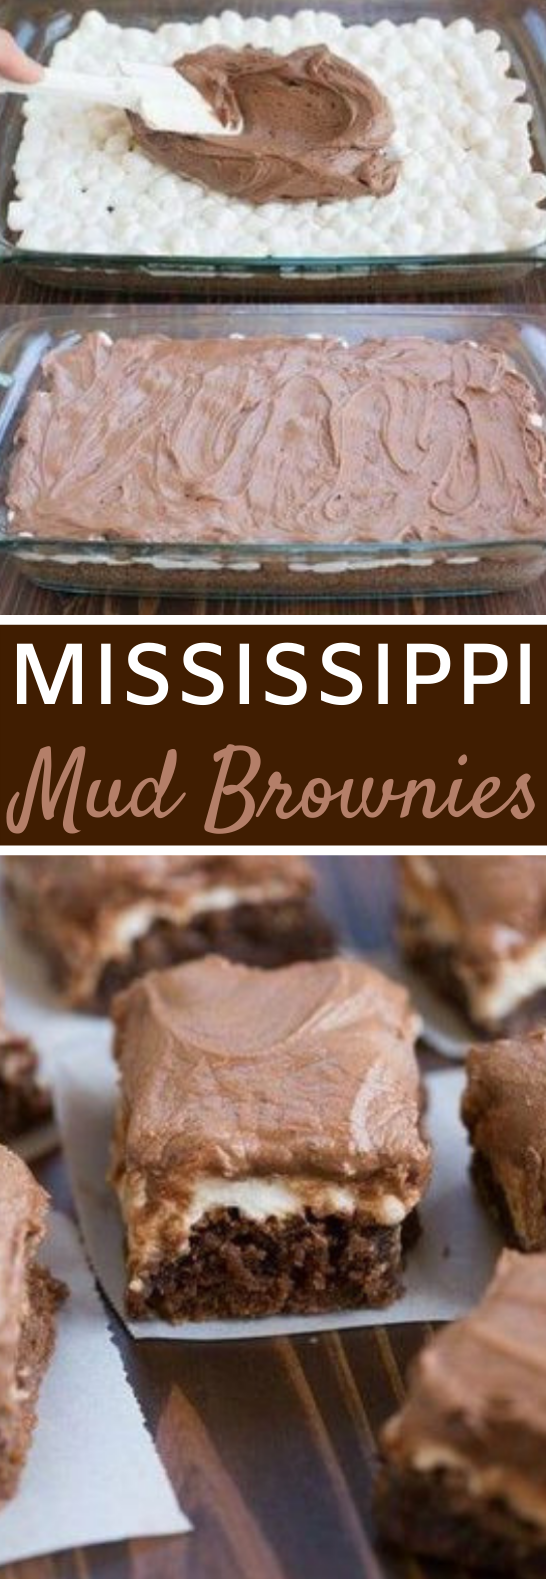 Mississippi Mud Brownies #desserts #brownies #cake #baking #recipes